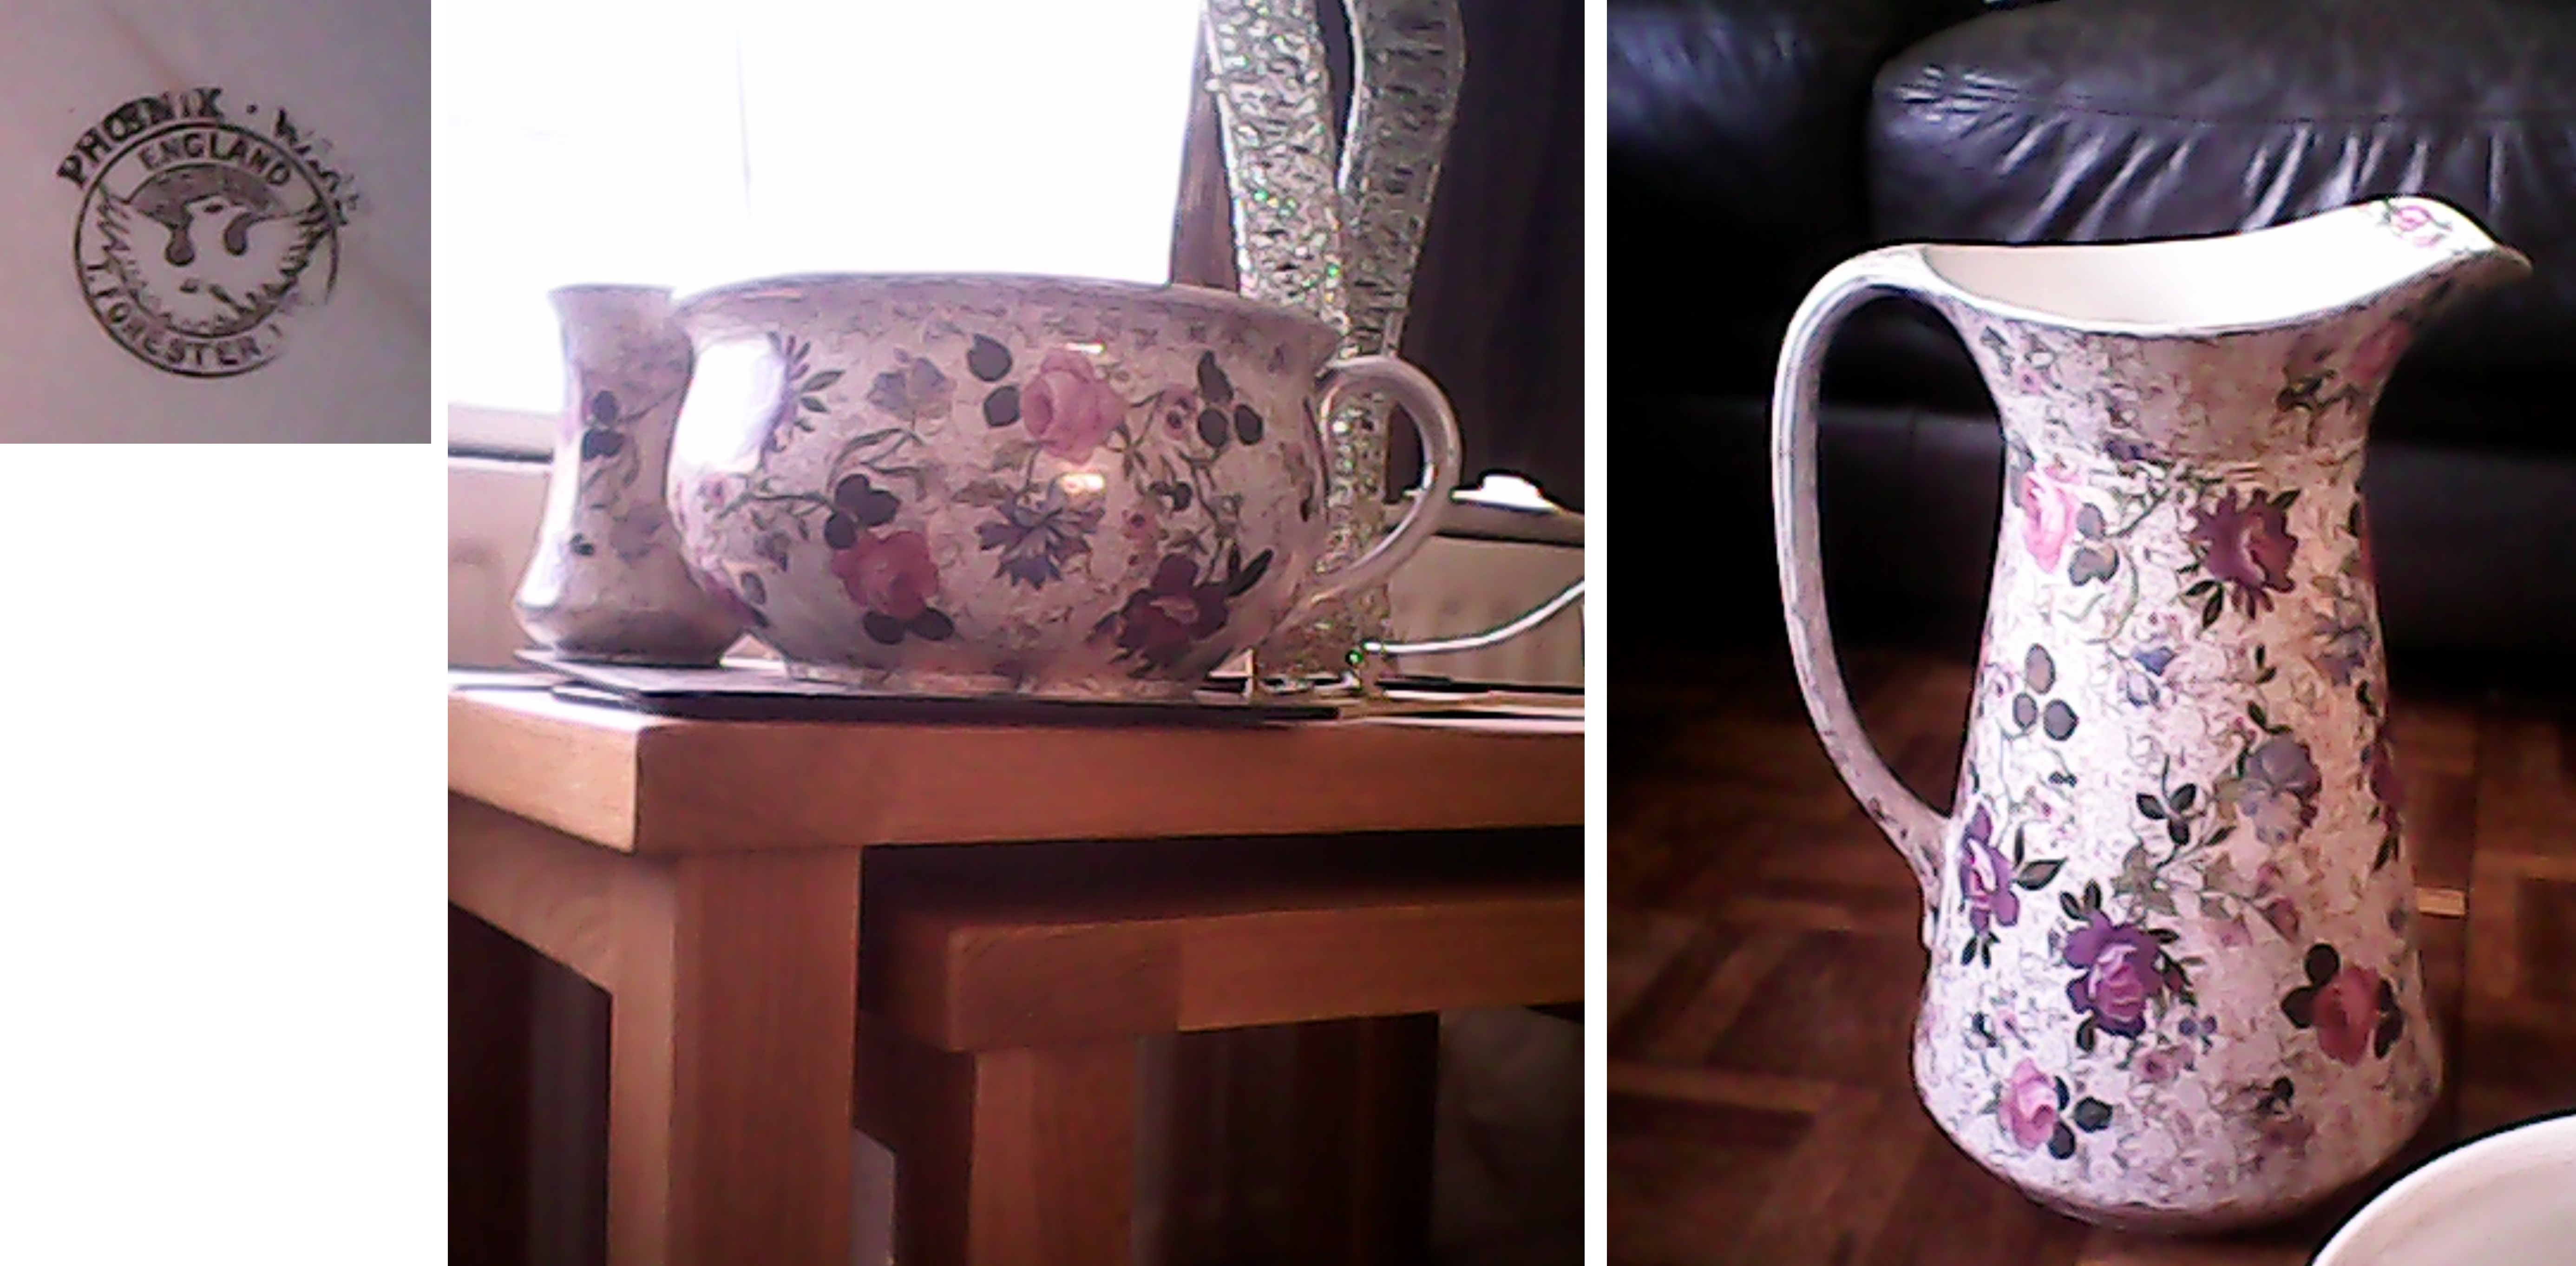 Images sent by Heather Schofield. Pieces made between 1891 and 1920. Bowl Diam 16.5ins by 4.5ins Deep. Potty 9ins Diam by 5ins Deep. Jug 13ins Tall. Toothbrush holder is 3ins Diam 5ins Tall